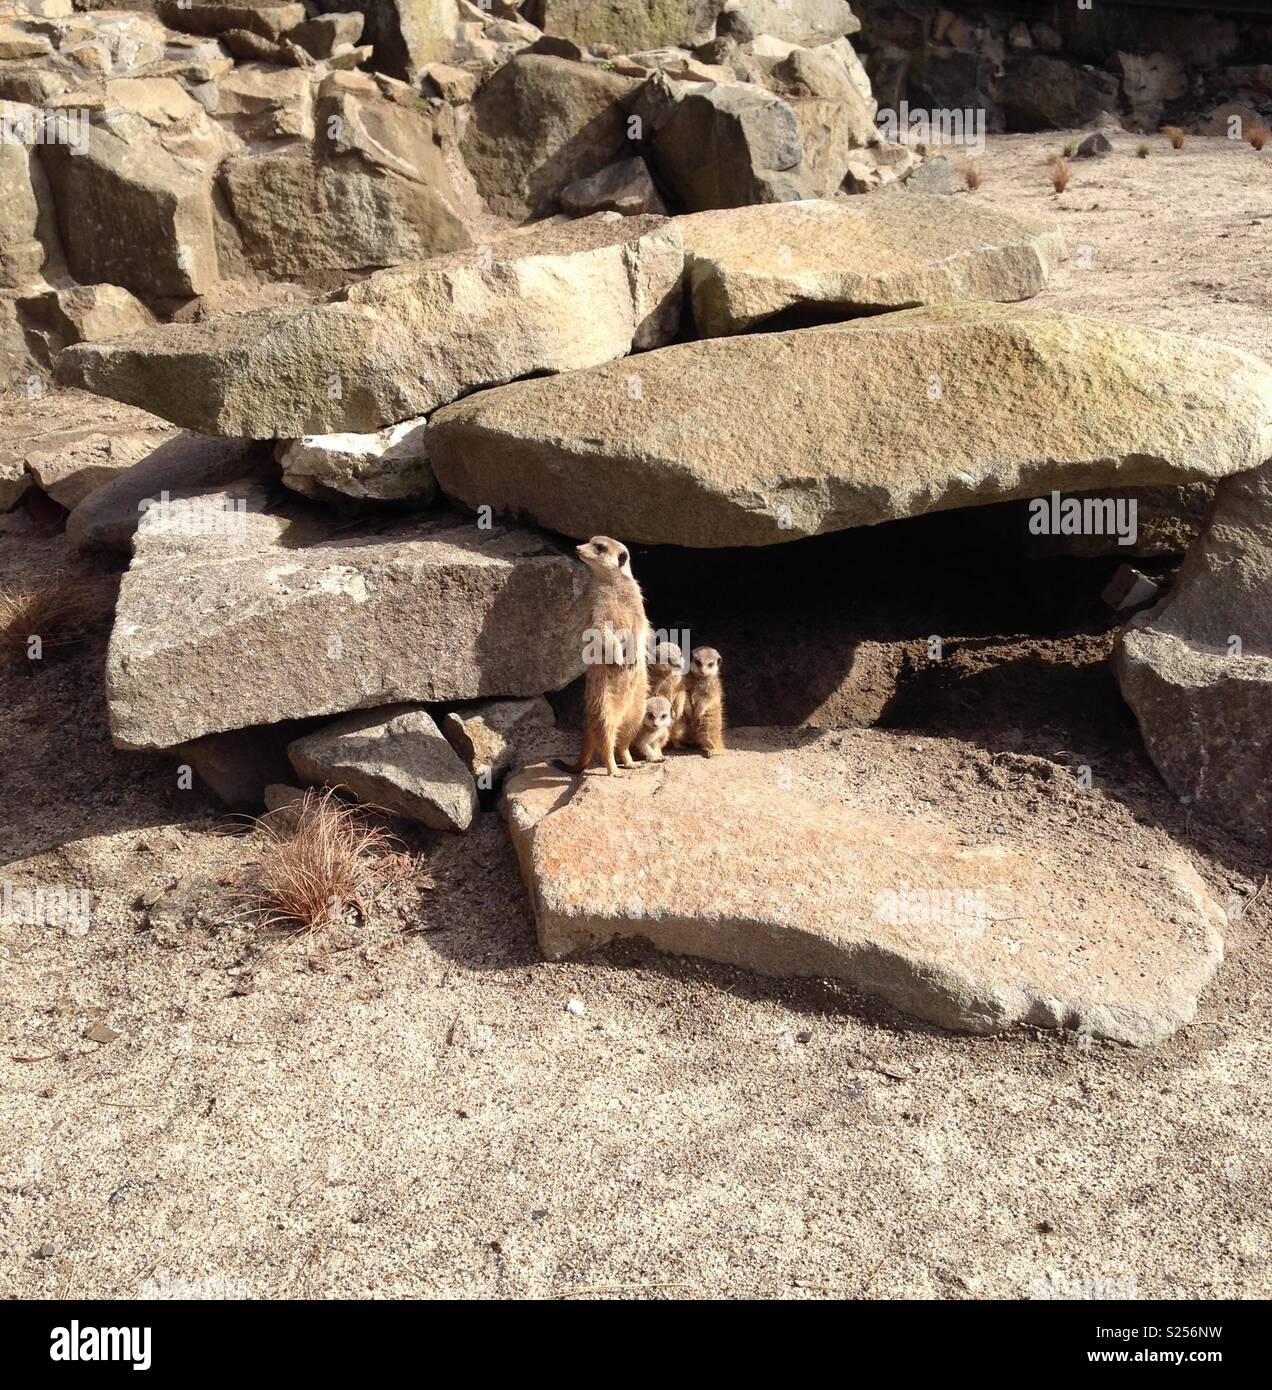 Meerkat mother and pups - Stock Image